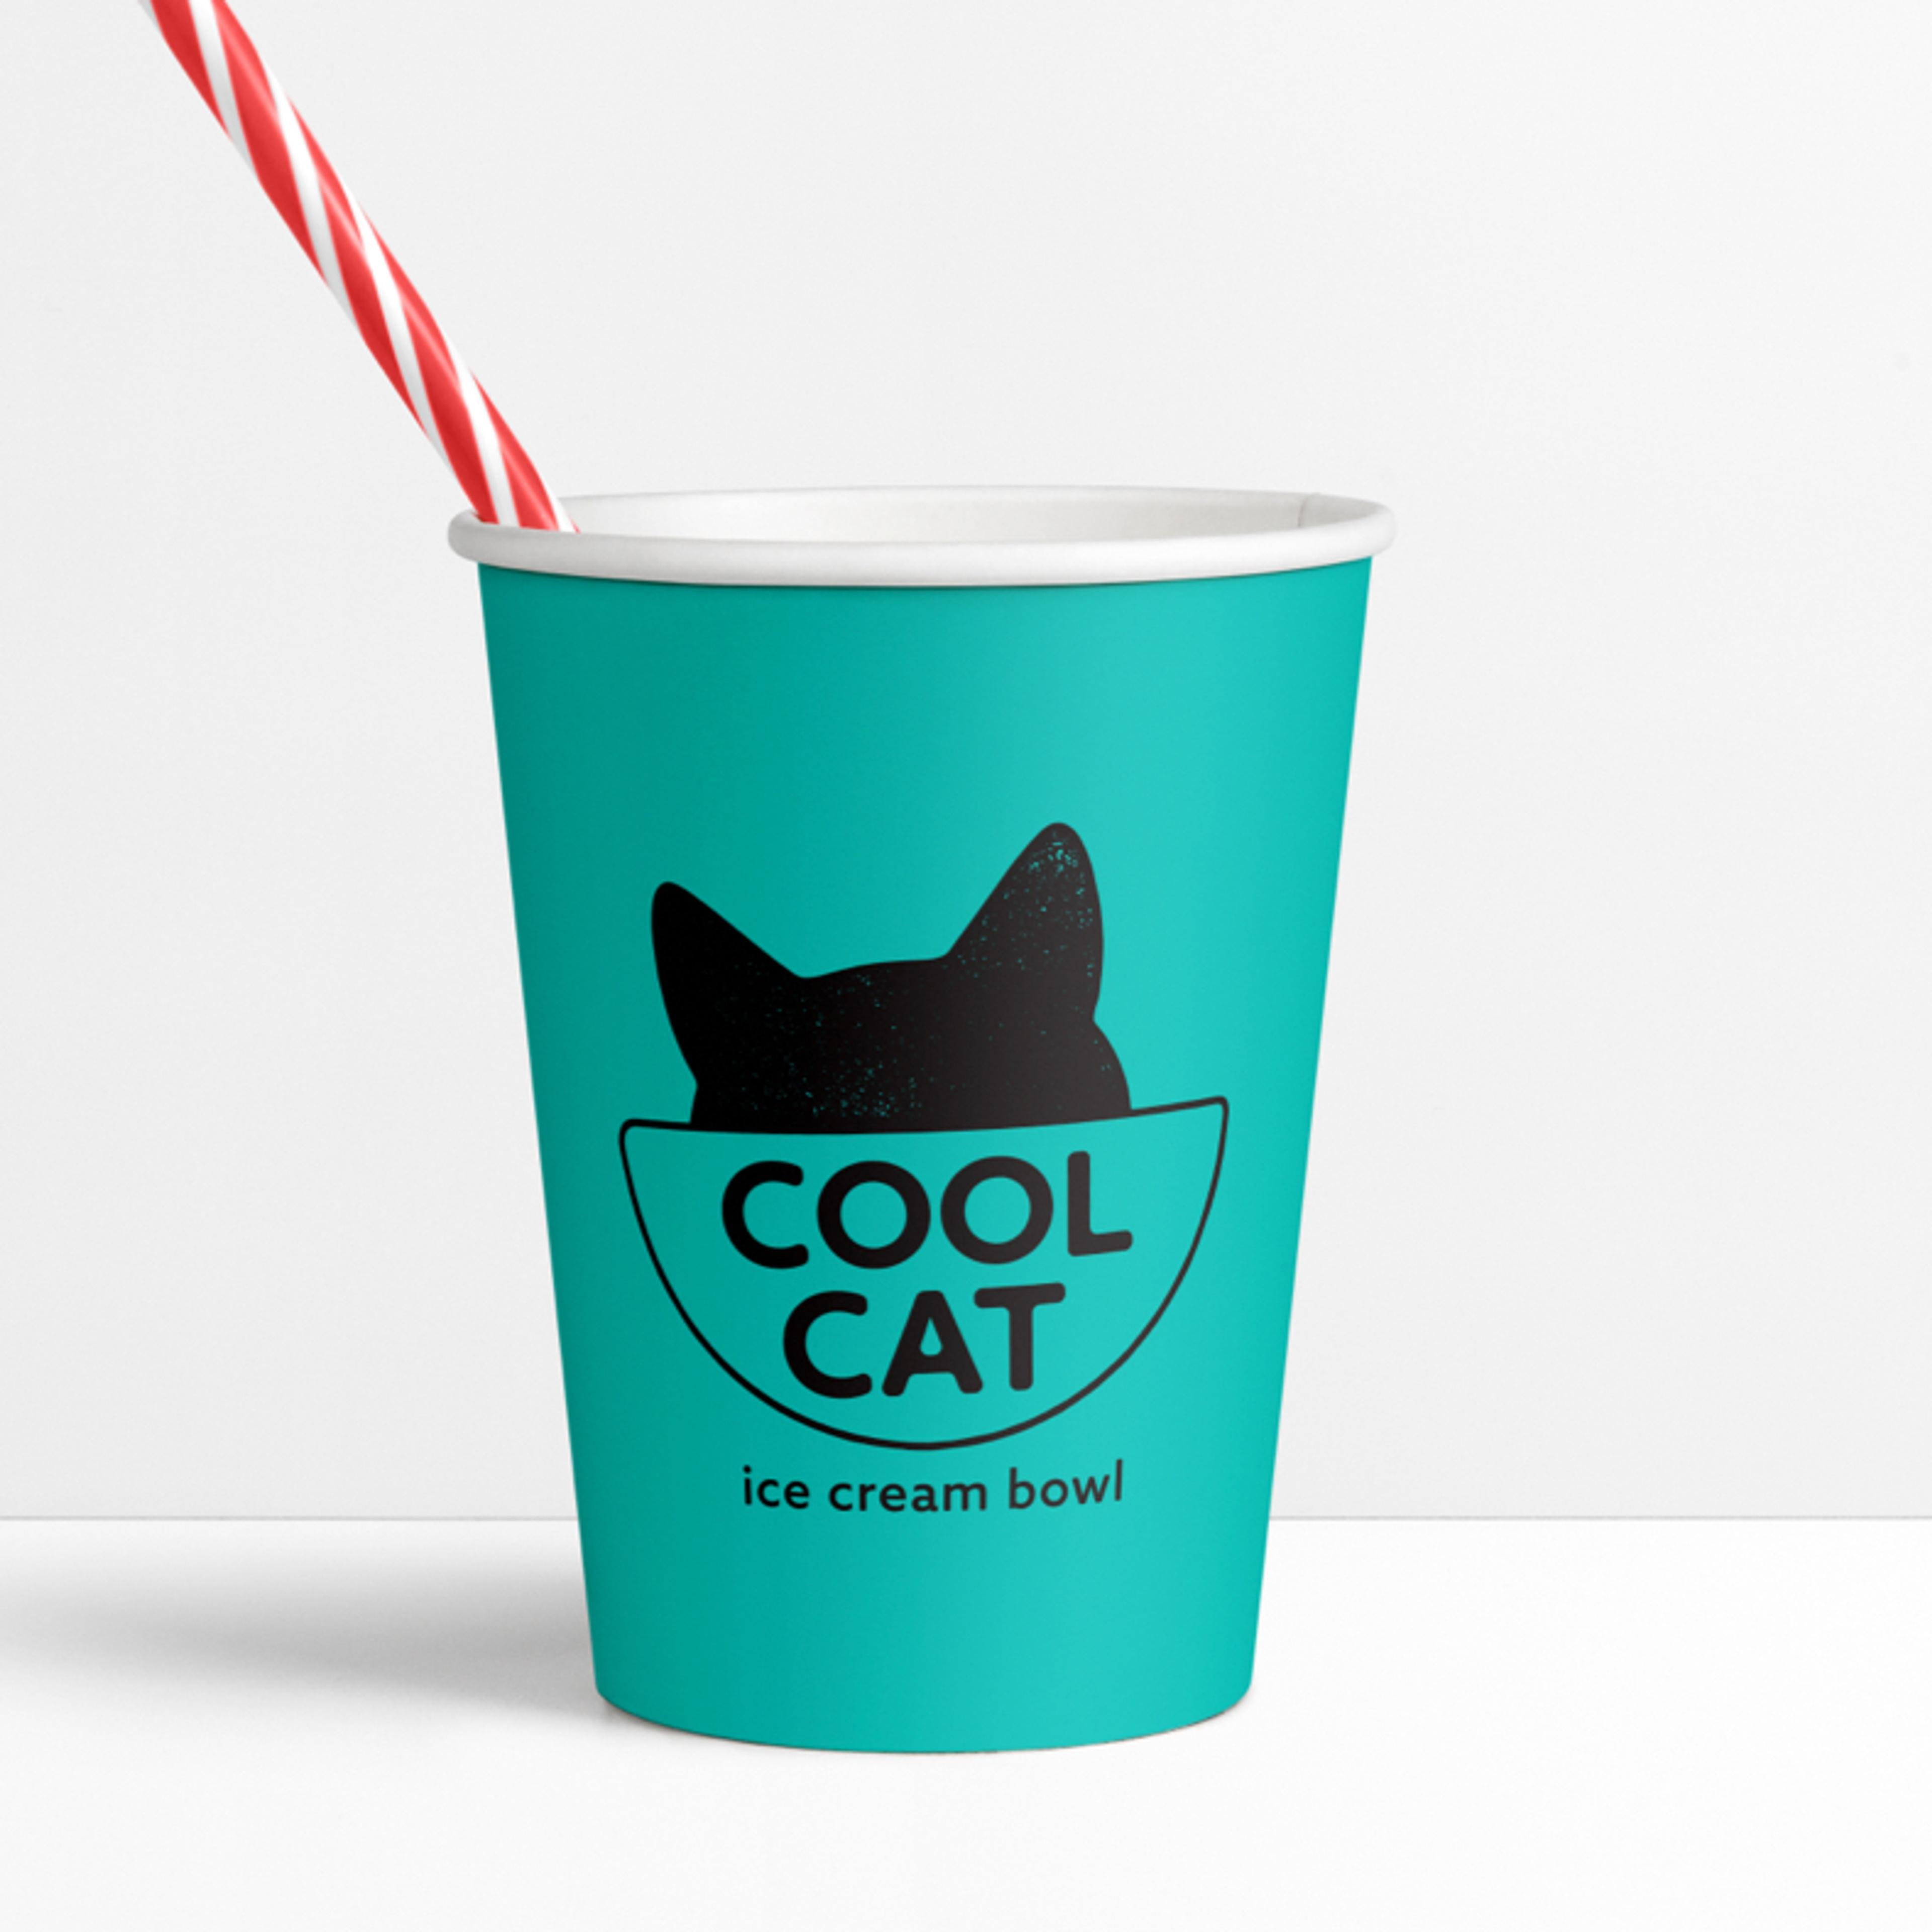 Cool Cat ice cream cup brand and logo design